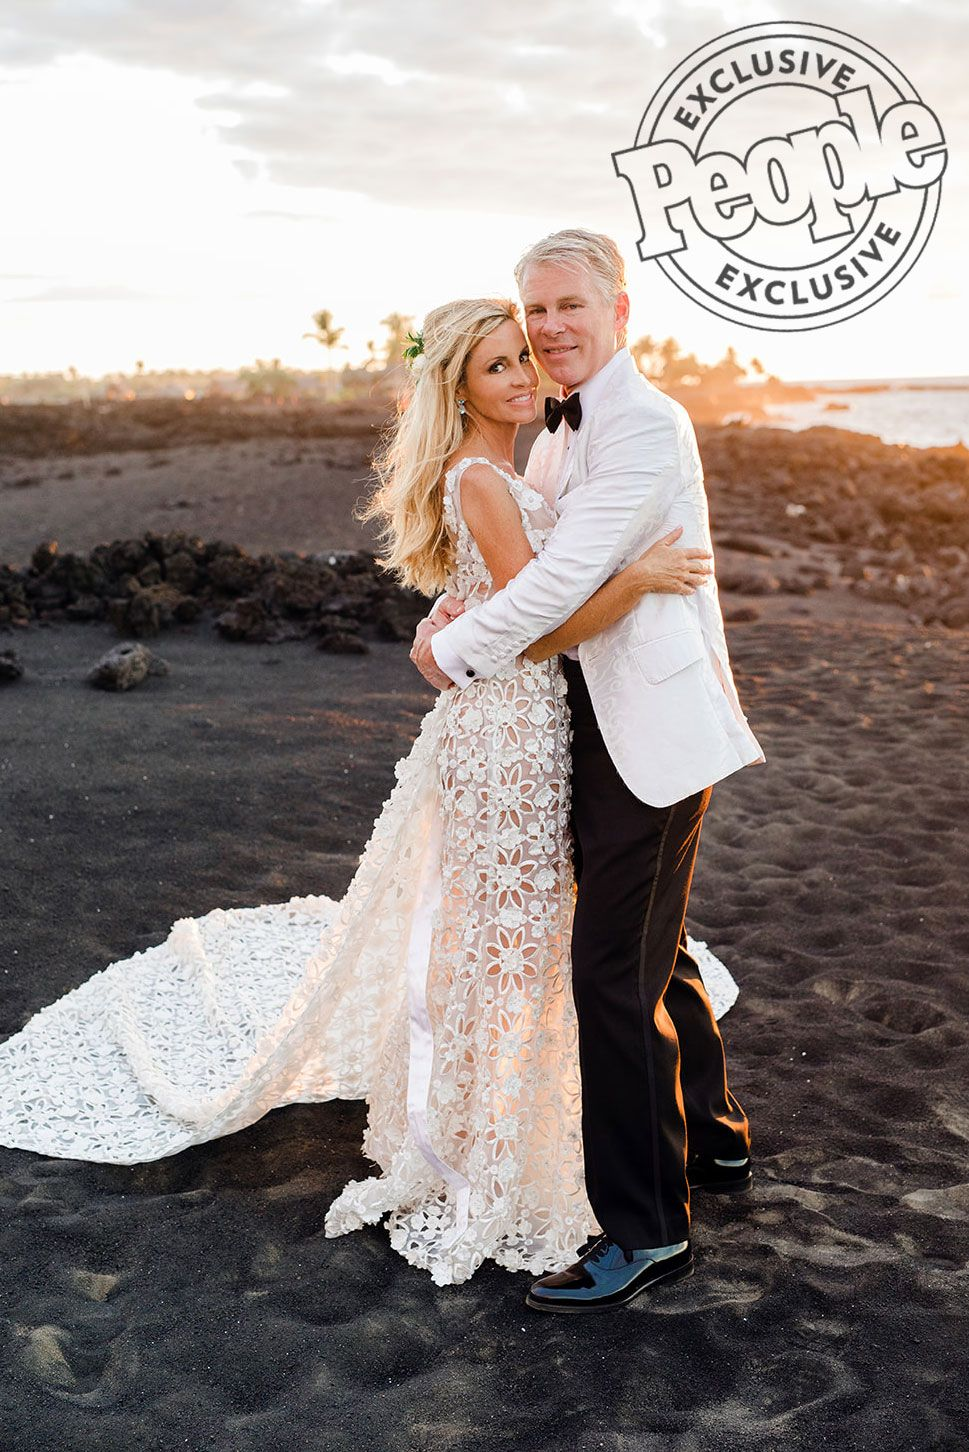 The Real Housewives Of Beverly Hills Camille Grammer Is Married See Her Wedding Photo Las Vegas Wedding Dresses Vegas Wedding Dress Boston Wedding Dress [ 1452 x 969 Pixel ]